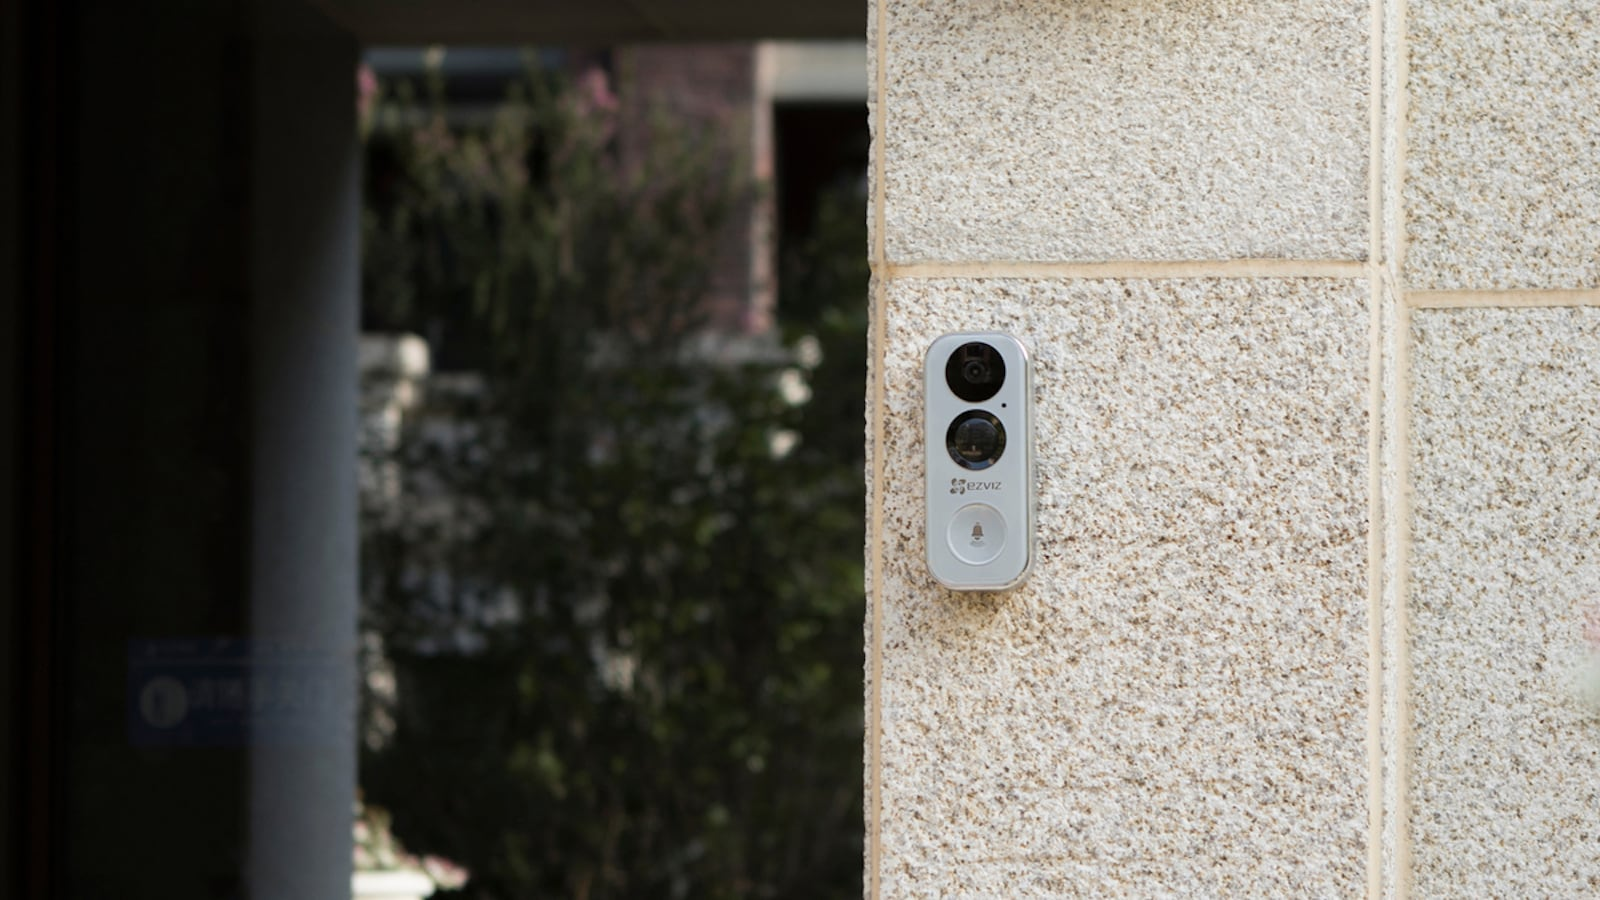 EZVIZ DB1 Wi-Fi Smart Doorbell displays who's at the door from top to bottom